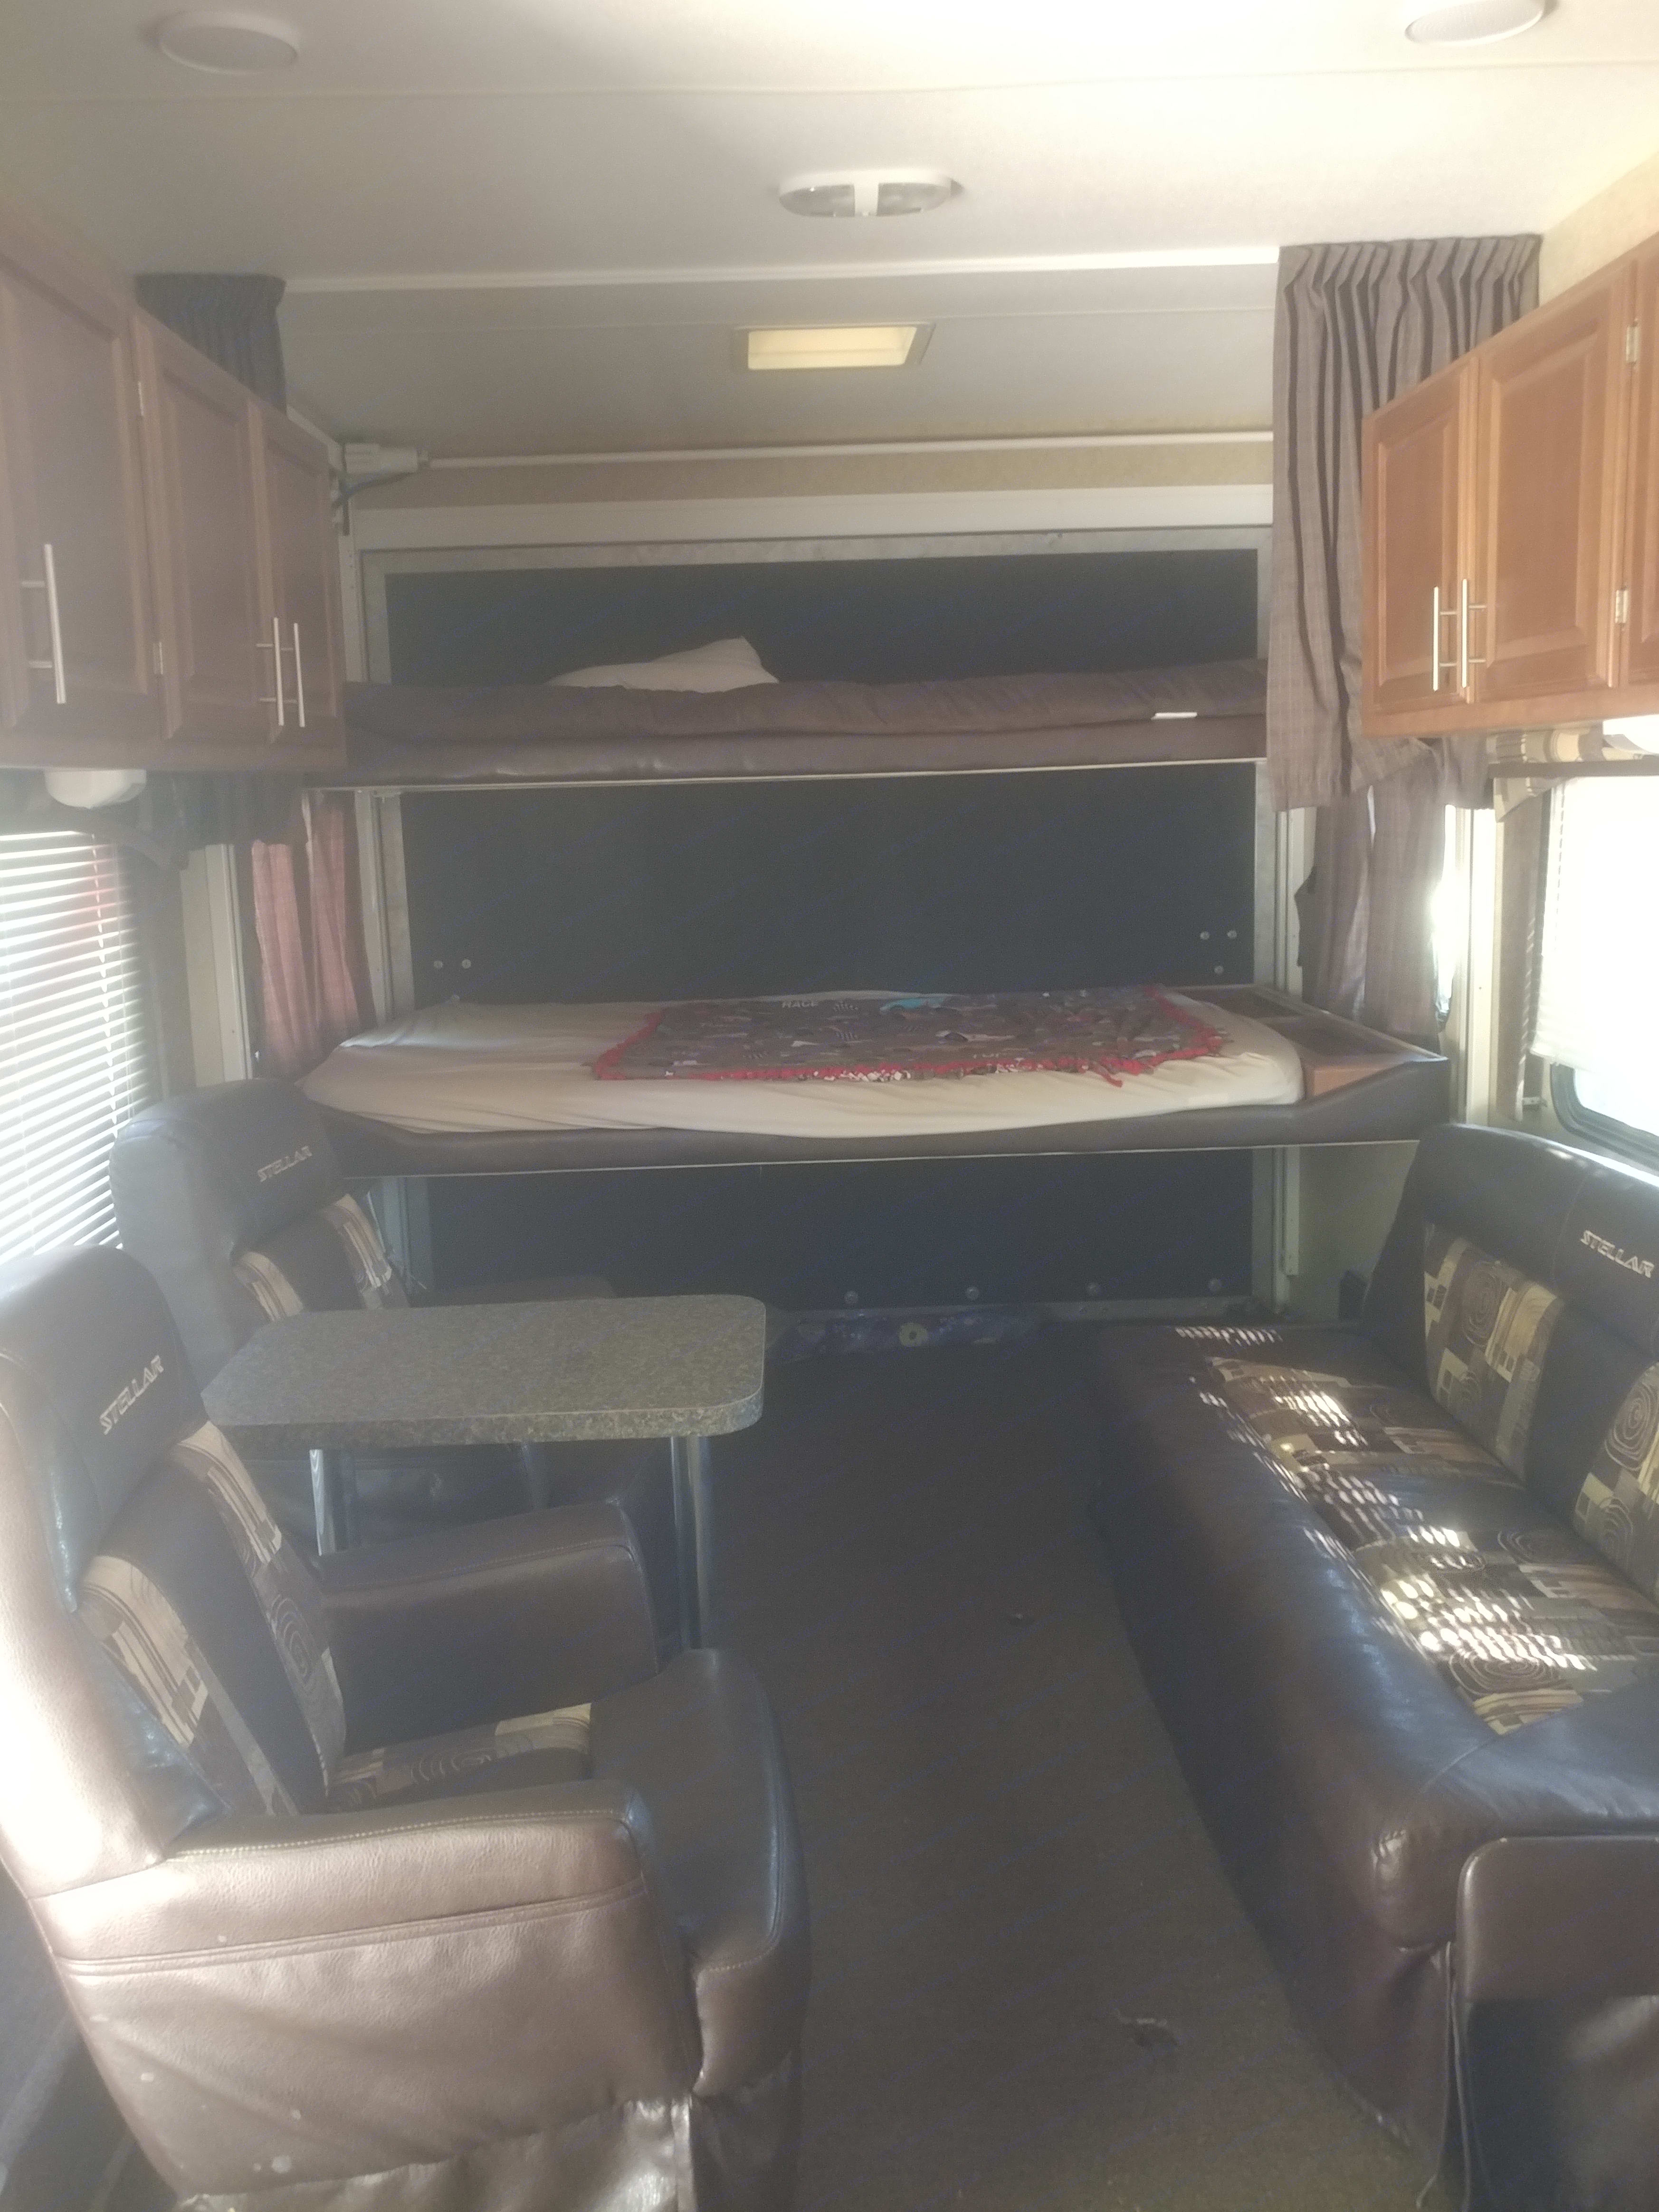 2 bunk beds go up, the couch folds up. The tables are removeable, captain seats go all the way to the master room so you can have room for your toys. . Eclipse Recreational Vehicles Stellar 2013